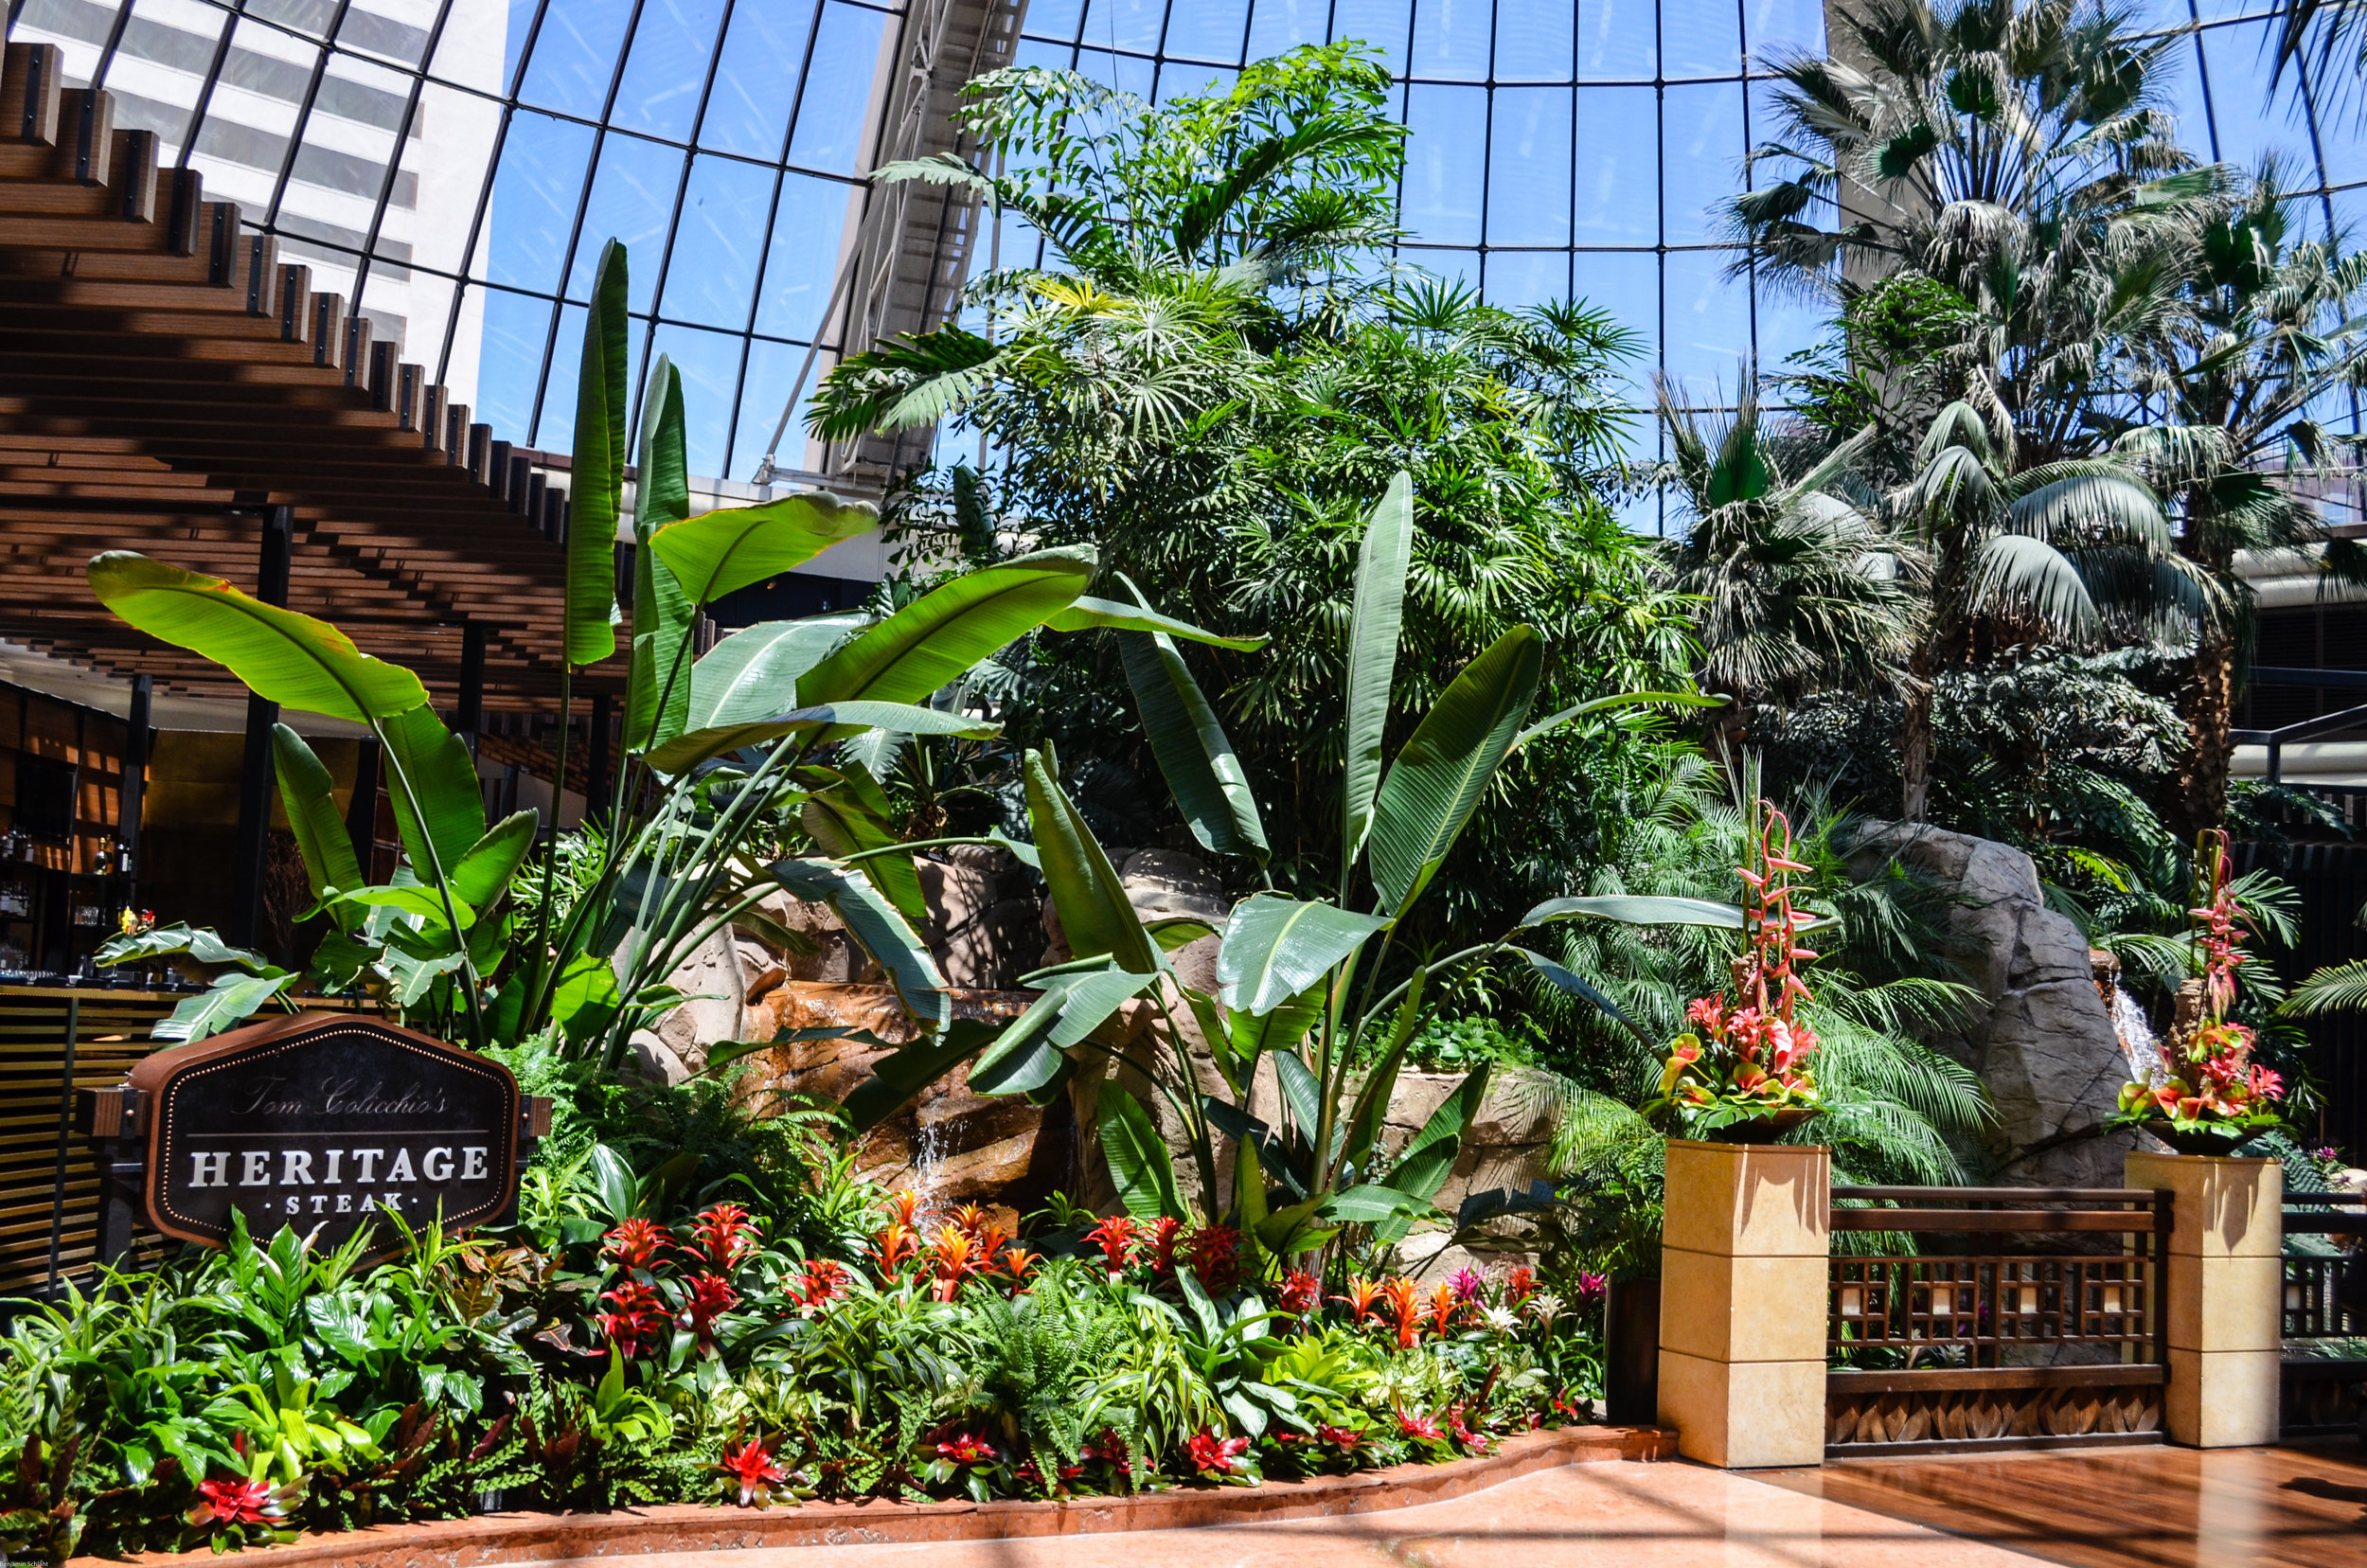 Part of the rainforest in the Mirage